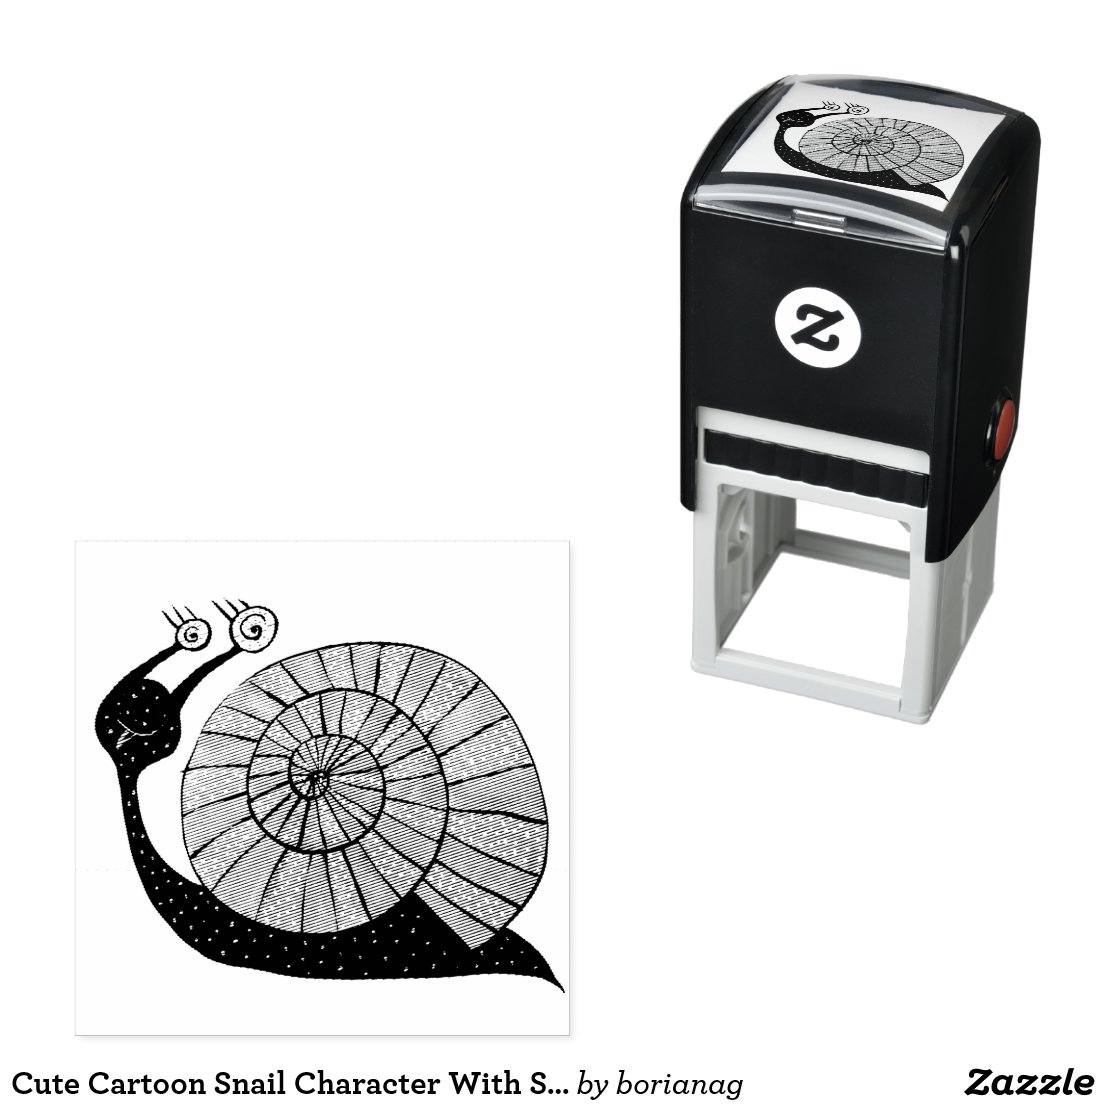 Cute Cartoon Snail Character With Spiral Eyes Self-inking Stamp